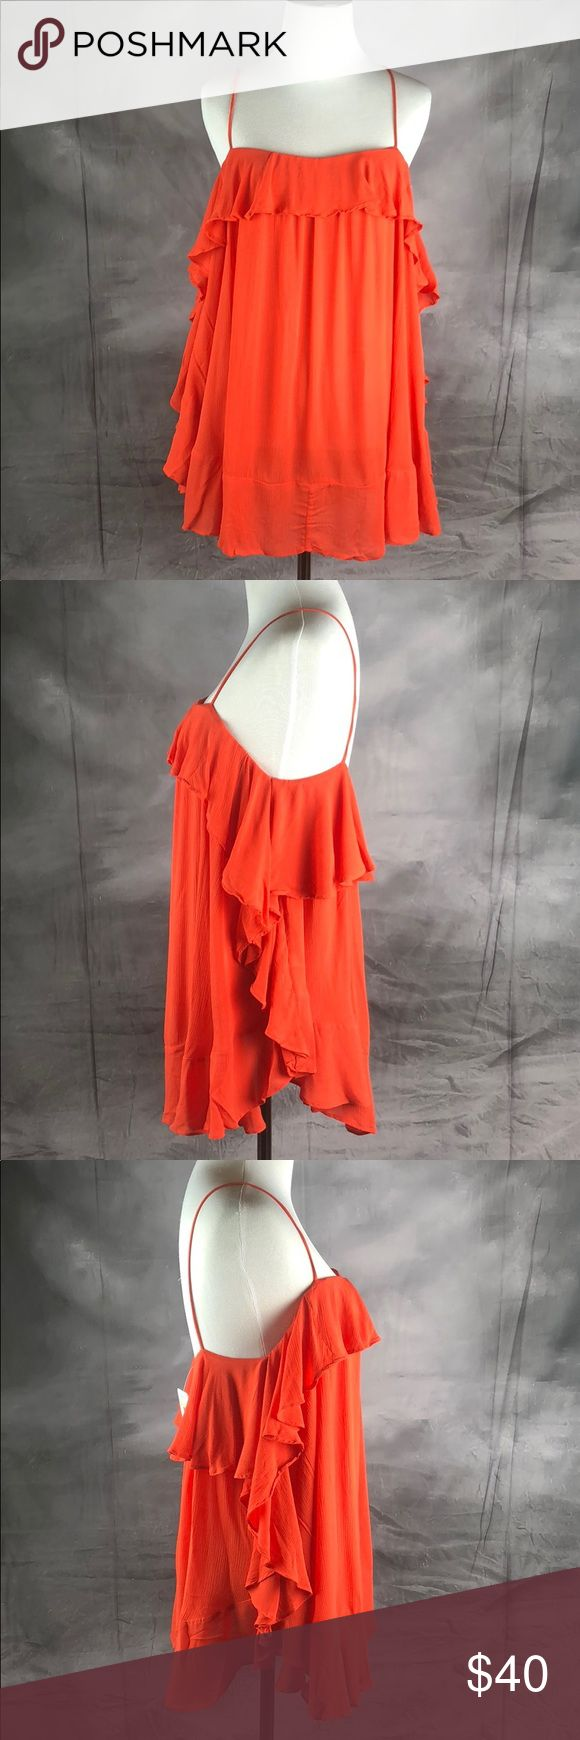 "{Free People}Semi-sheer Gauze Cascades Ruffle Cami *Brand New with Tags  *Excellent Condition  *Size Medium  *color red orange  * Length: 29"" (approx) * Pullover *Square neck *Sleeveless *Semi-sheer gauze fabric *Ruffle overlay *Flounce hem Free People Tops"